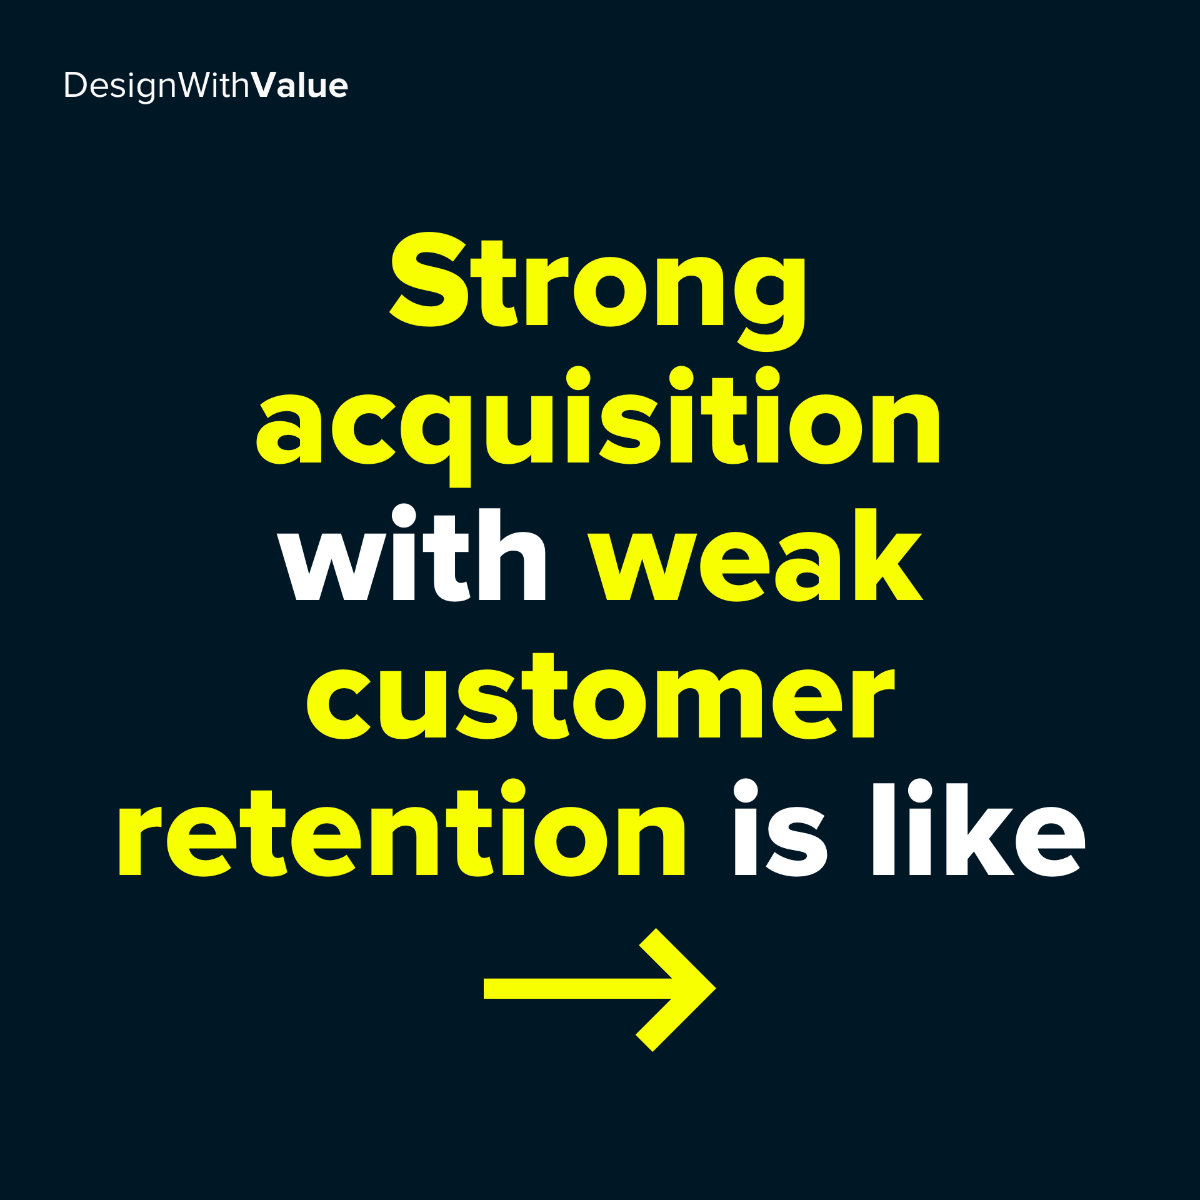 Strong acquisition with weak customer retention is like